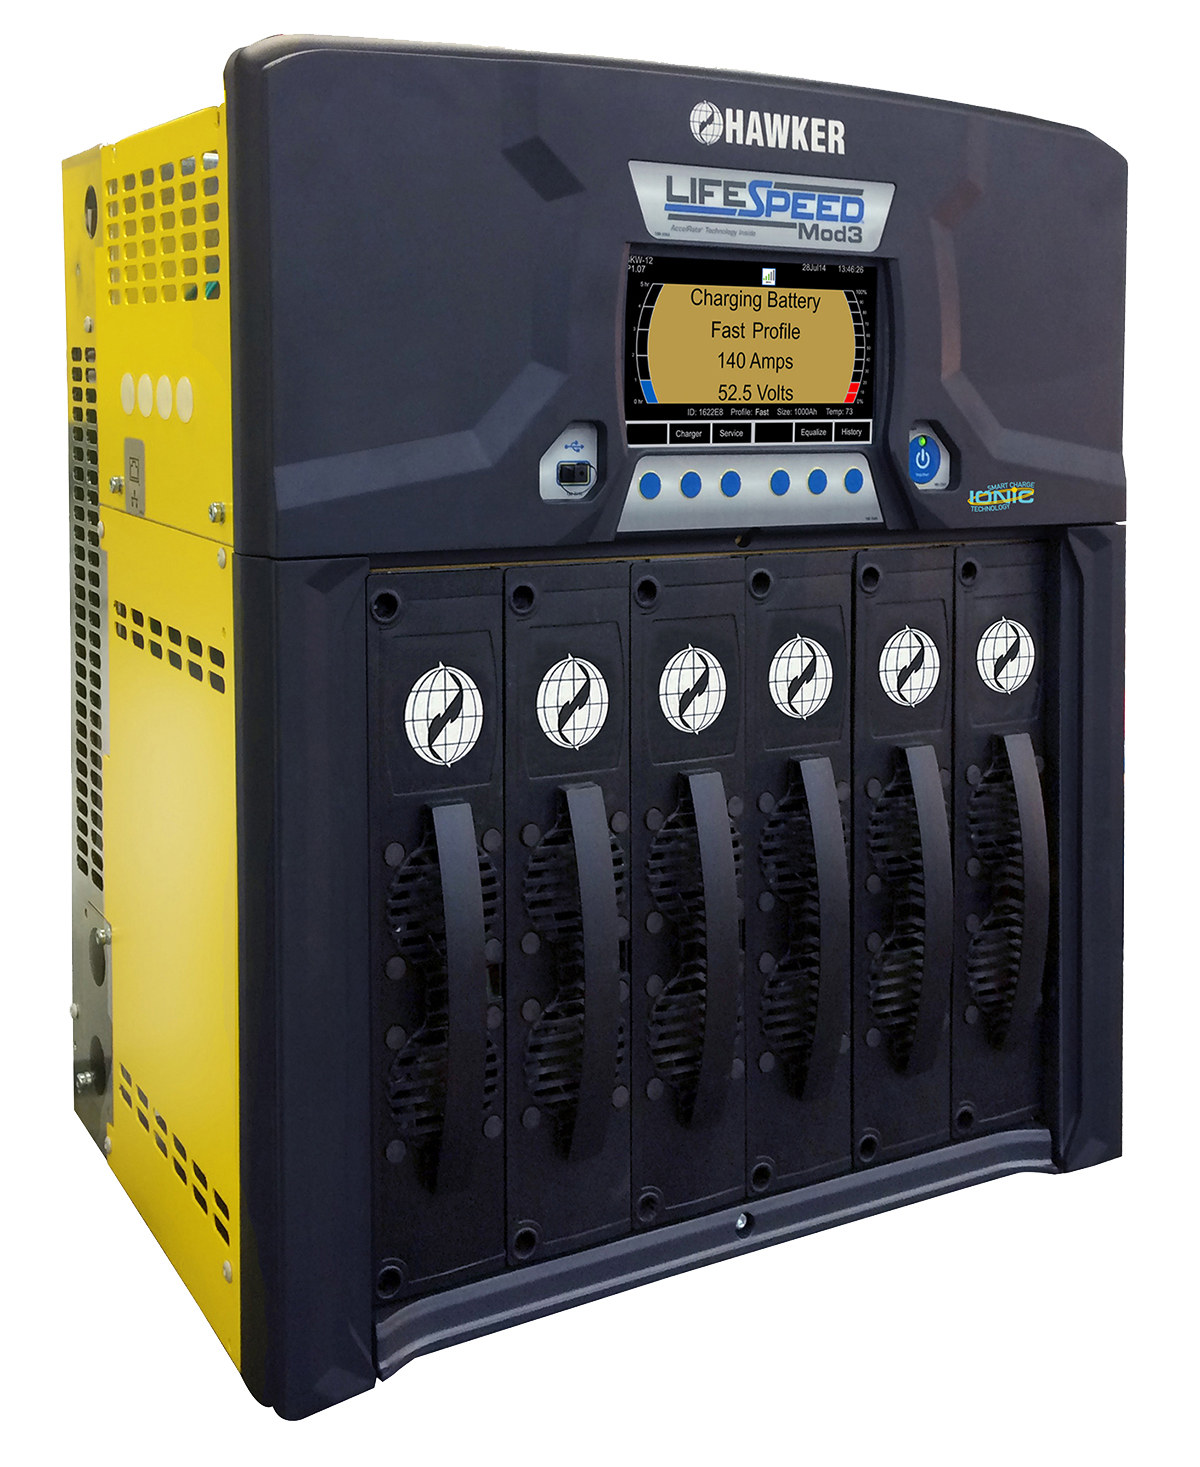 motive power chargers forklift chargers oldham batteries canada inc rh oldham ca Hawker Battery 24V Hawker Battery Chargers Power Guard